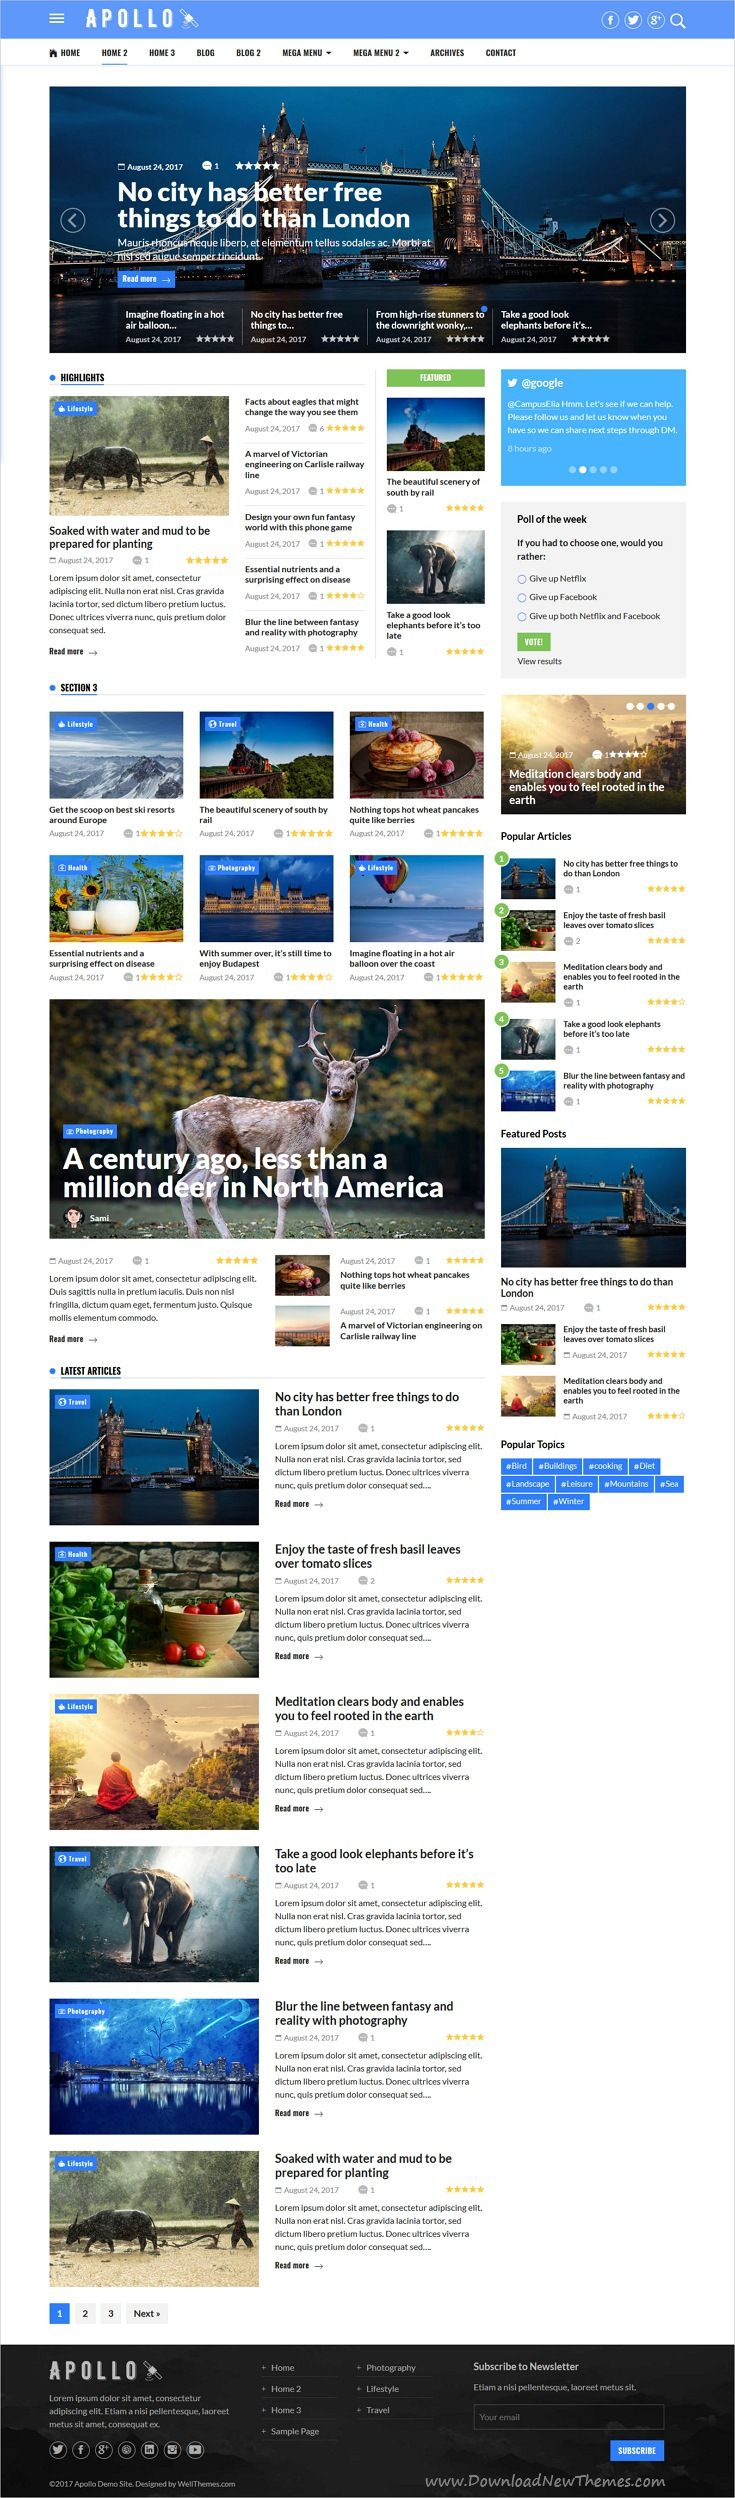 Apollo is clean and modern design 5in1 responsive #WordPress theme for #news, #blog and #magazine websites download now..